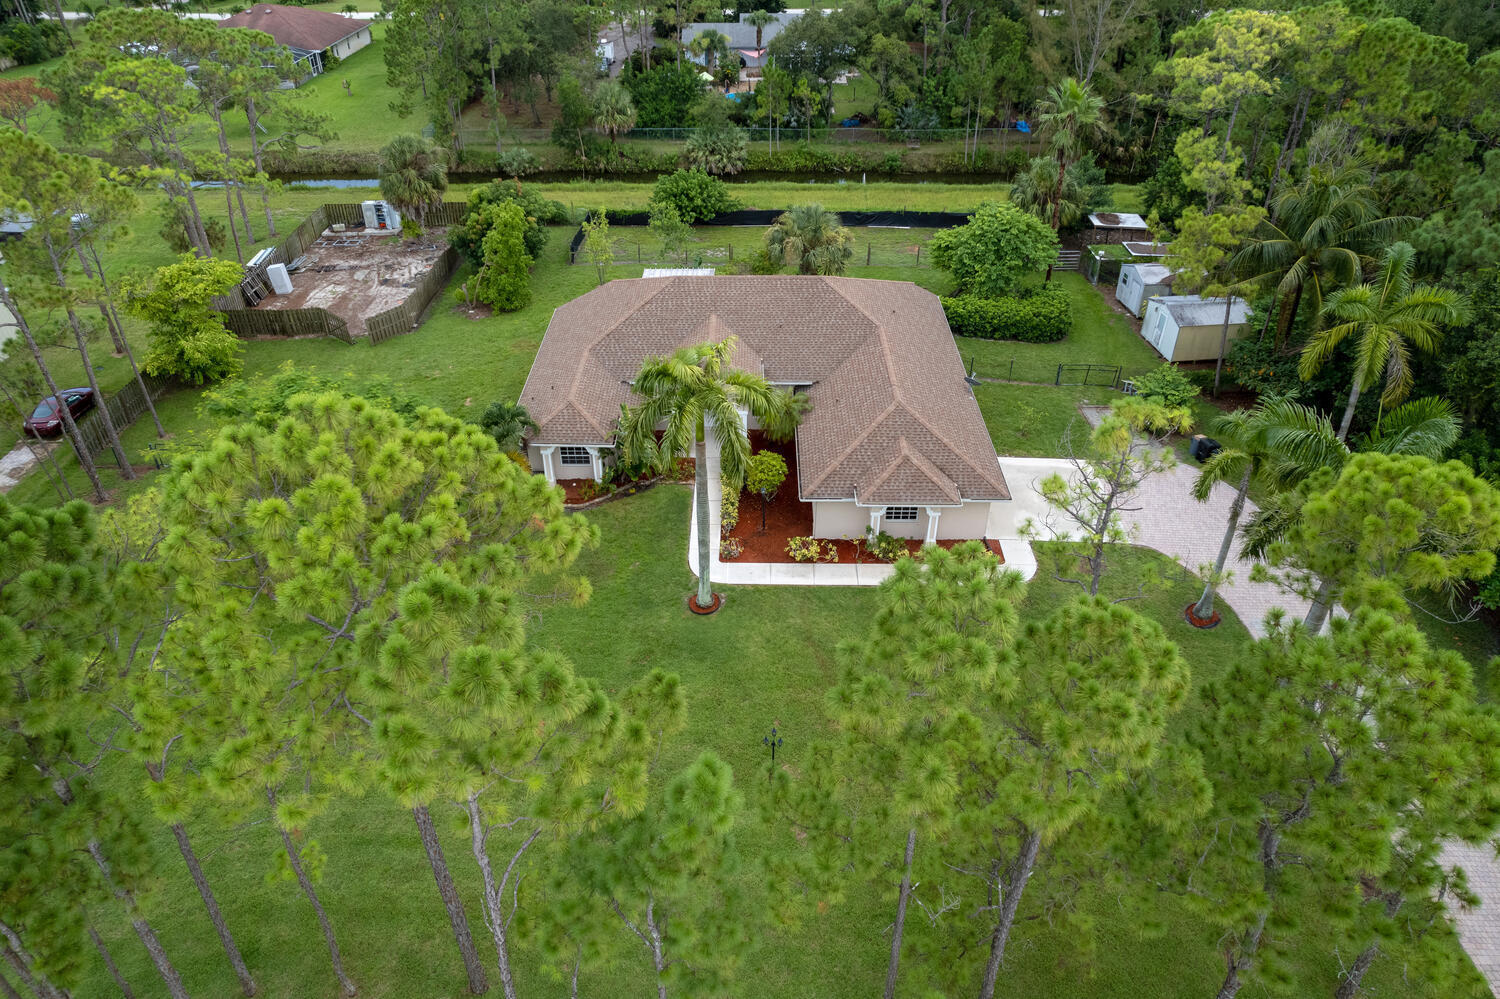 Beautiful 3 BR2.1BA2CG home on a 1.3 Acre fully fenced lot in a prime eastern Loxahatchee location next to Bay Hill Estates.Features include an open floor plan,10'ceilings,diagonal tile in living area,wood plank tile in all bedrooms,new impact sliders,LED hi hats,water softener/RO Carbon water system.Enjoy the privacy of this oversized covered screened in patio and tropical landscaping complete with mature Royal and Coconut Palms.Kitchen offers custom wood cabinetry with Island and stainless appliances including cooktop with charcoal hood/convection oven,granite countertops.Master ensuite offers dual vanities,dual walk in closets,soaking tub and oversized walk in shower.Freshly painted interior and exterior with all new baseboards and newly tiled patio.No HOA-boats,RVs and horses welcome!